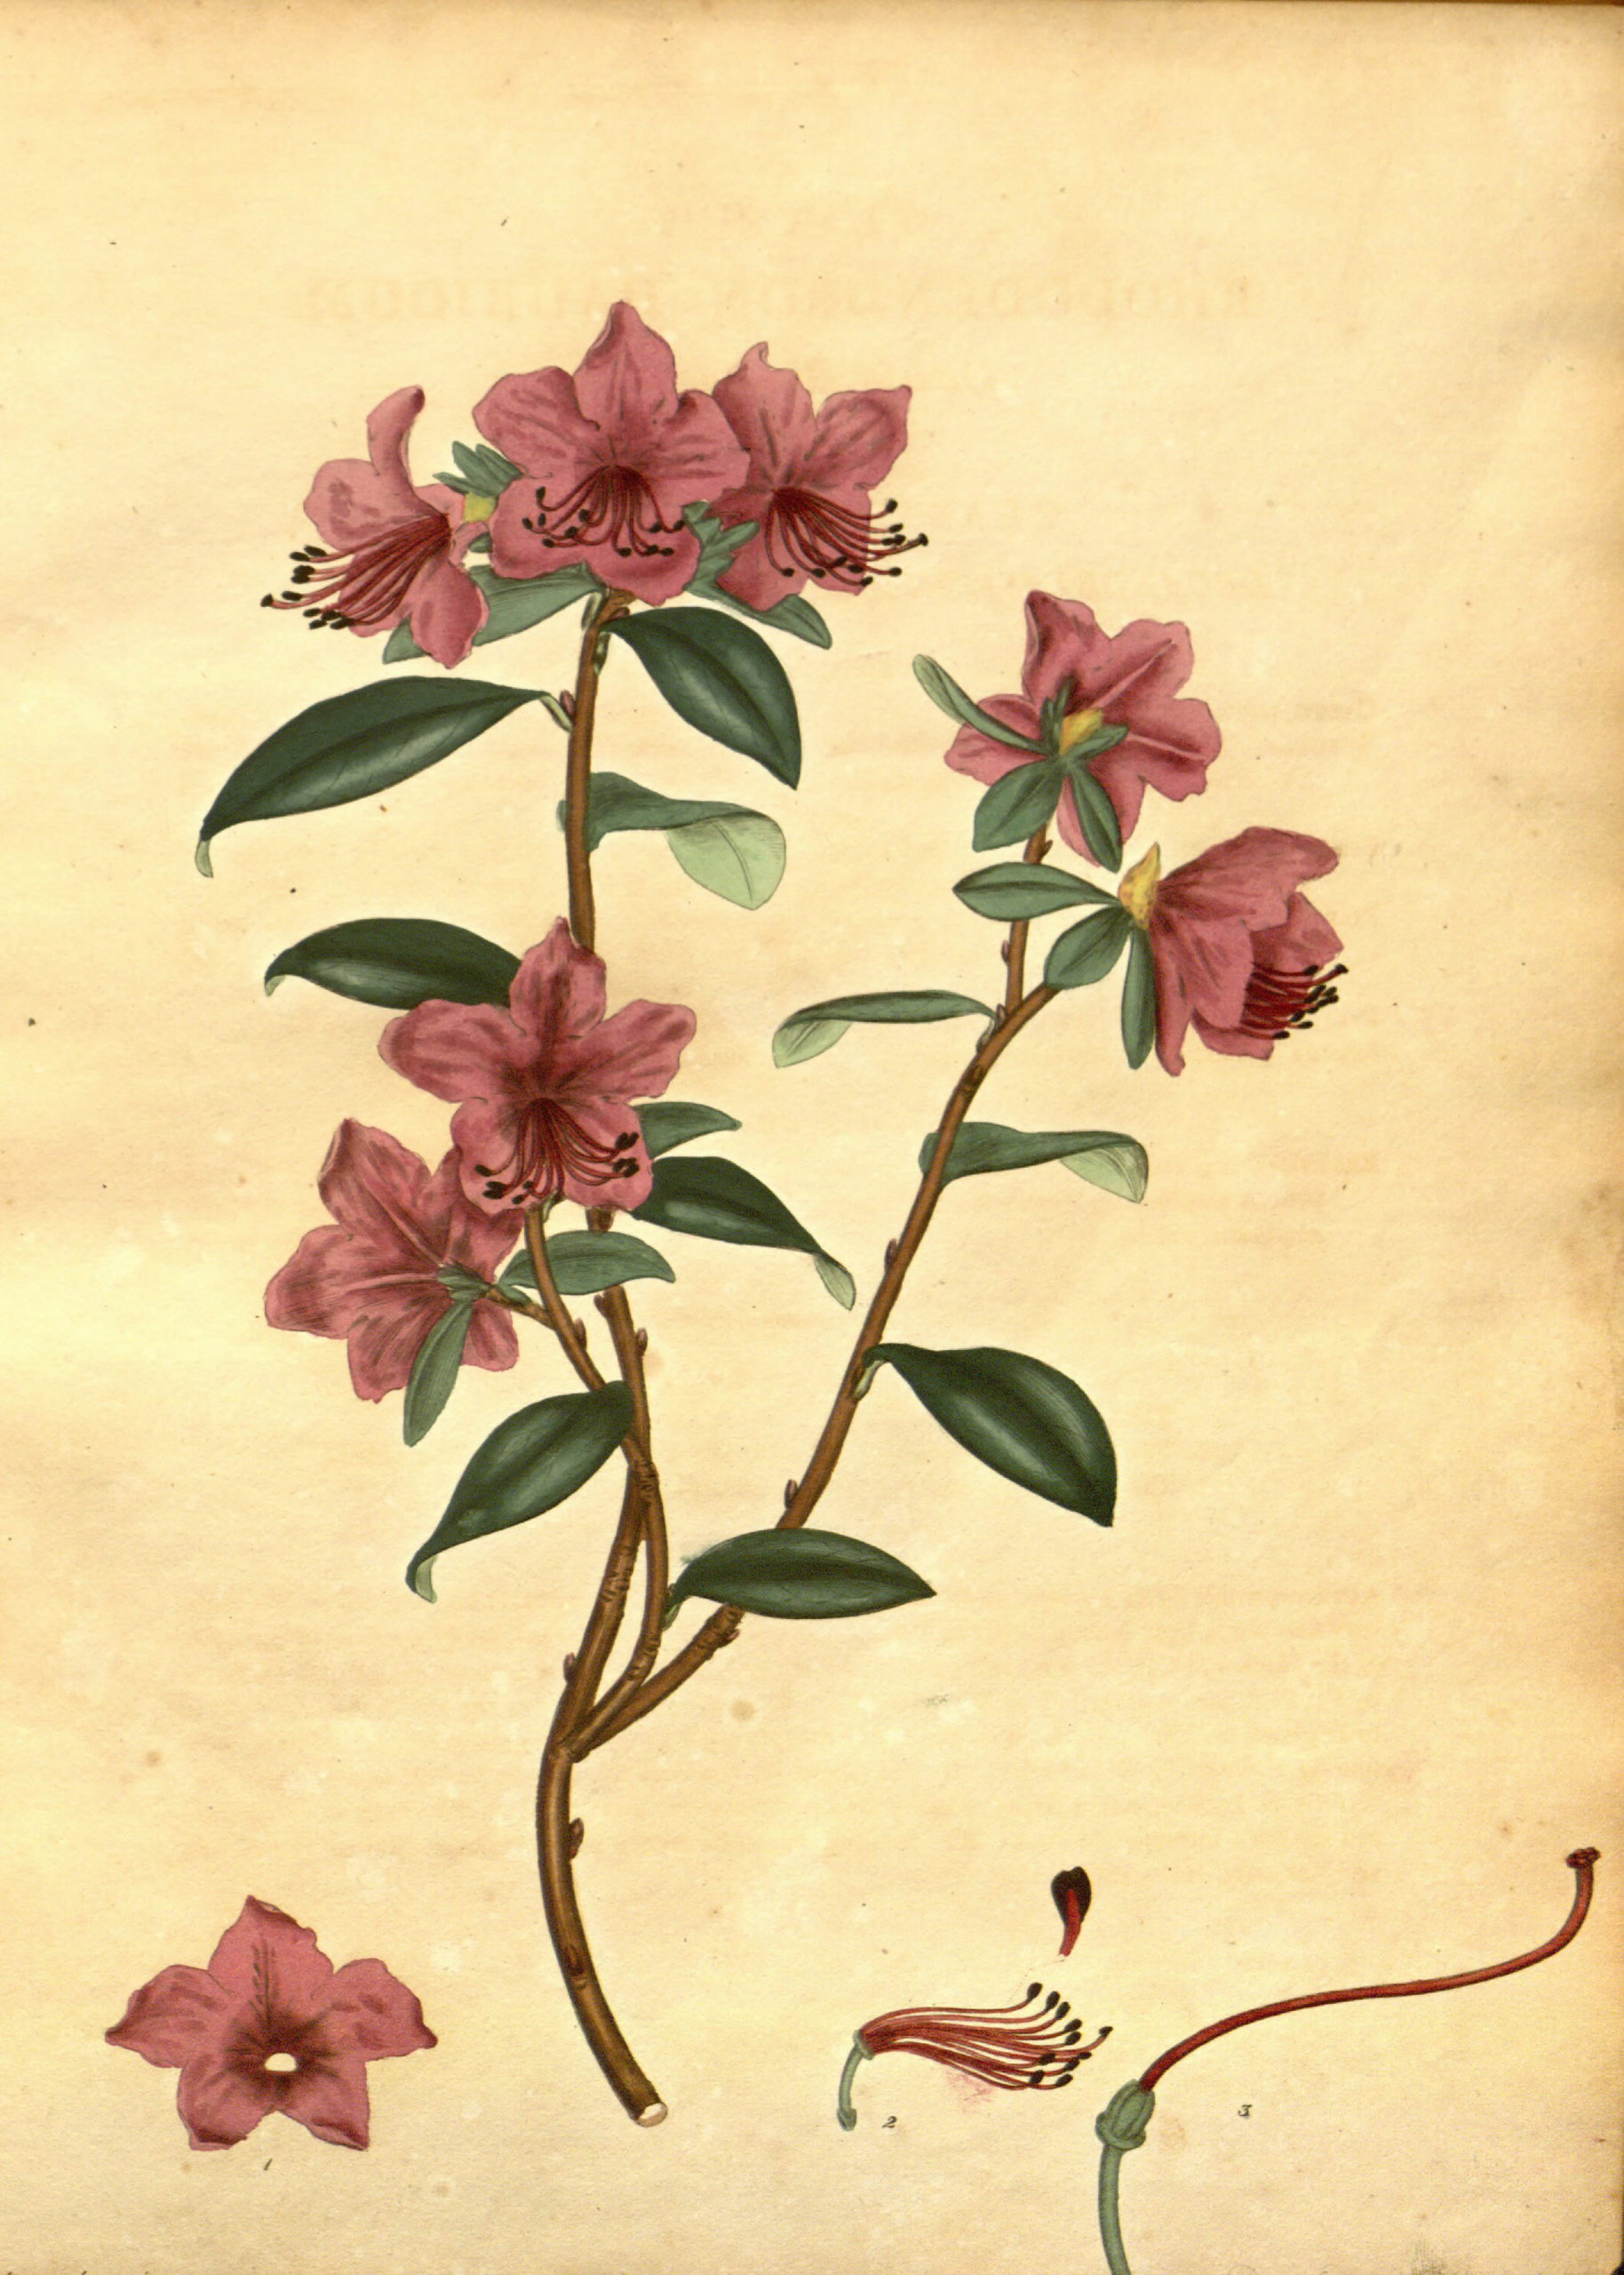 Vintage Botanical Prints - 32 in a series - Rhododendron dauricum Botanical Print from The Botanist's Repository (1797)